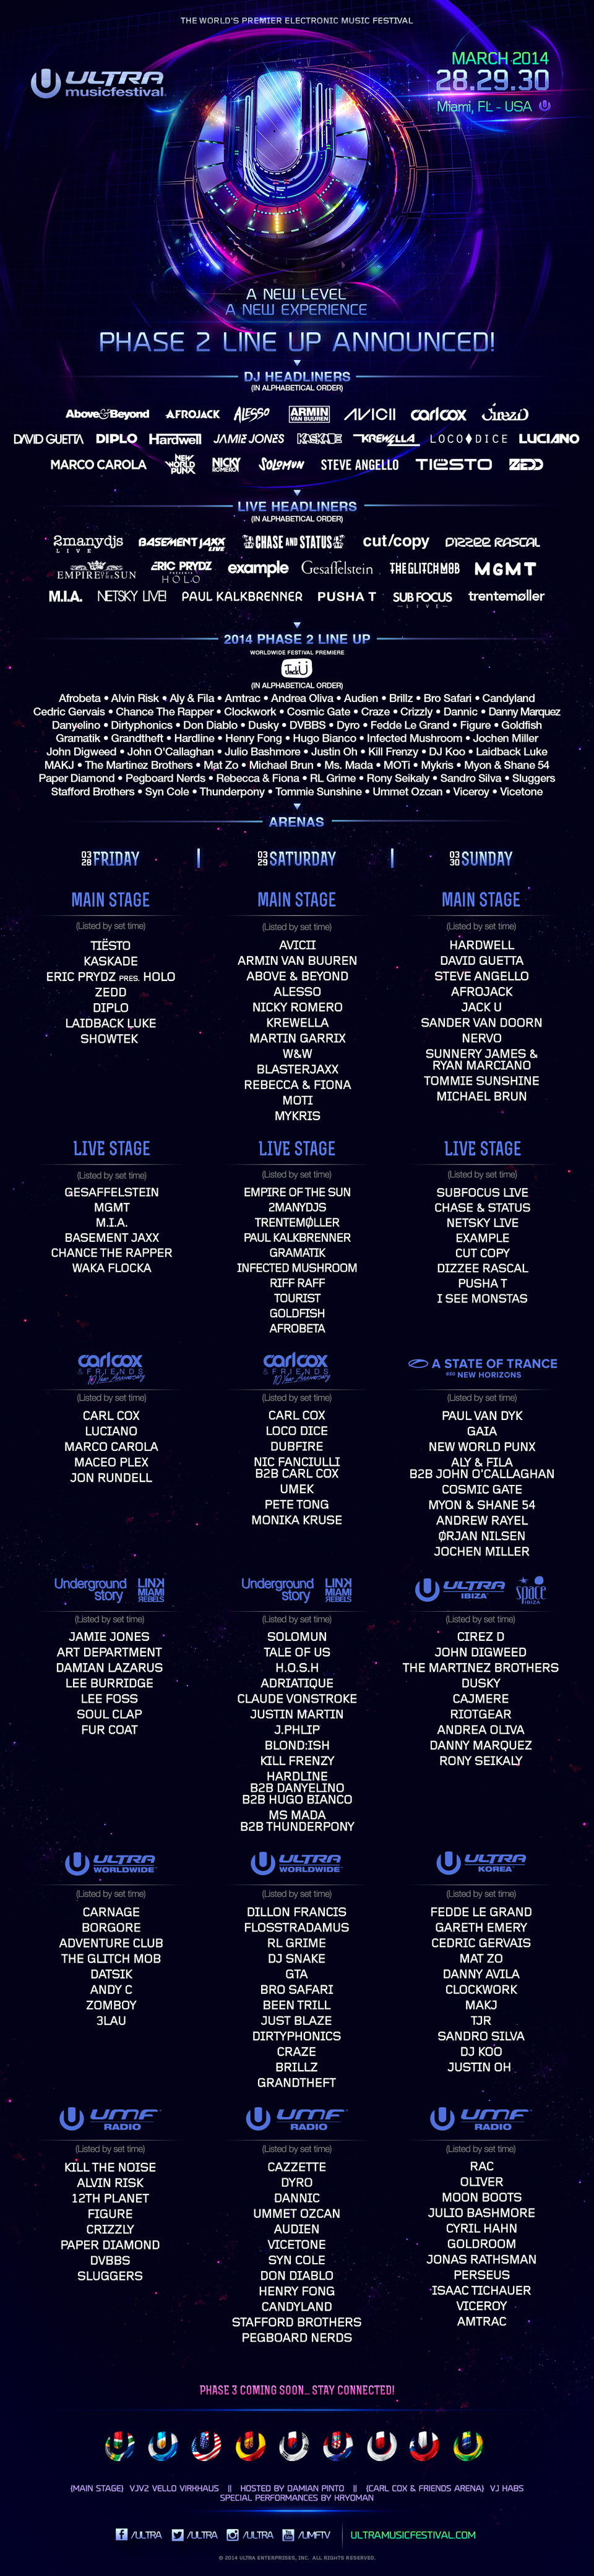 complete-ultra-music-festival-2014-lineup-poster